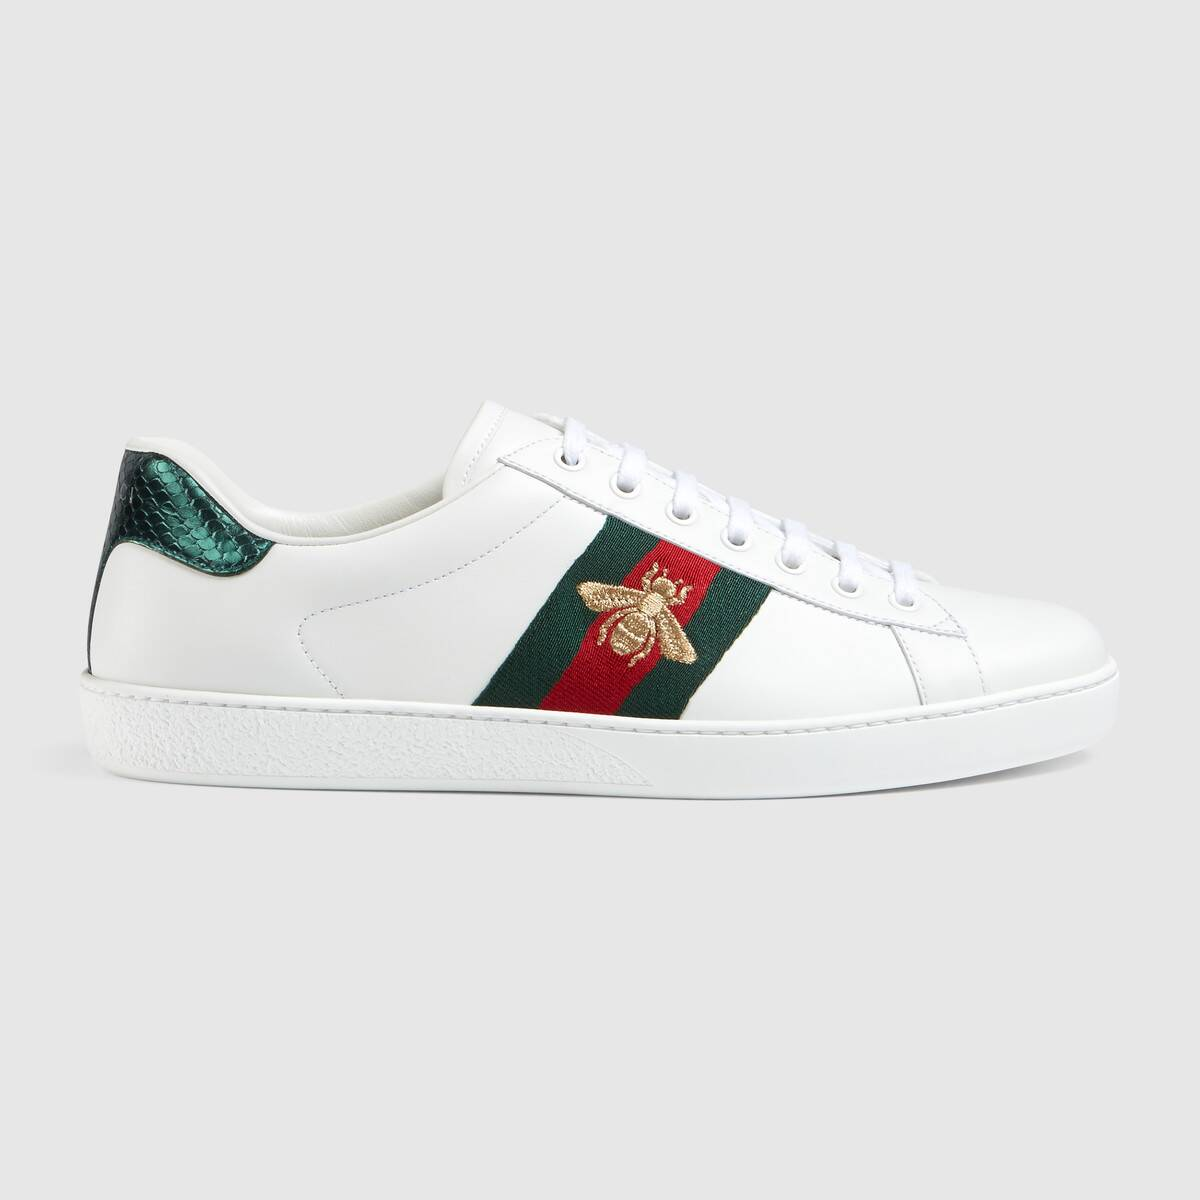 Win a pair of Gucci Ace Sneakers - honeberry